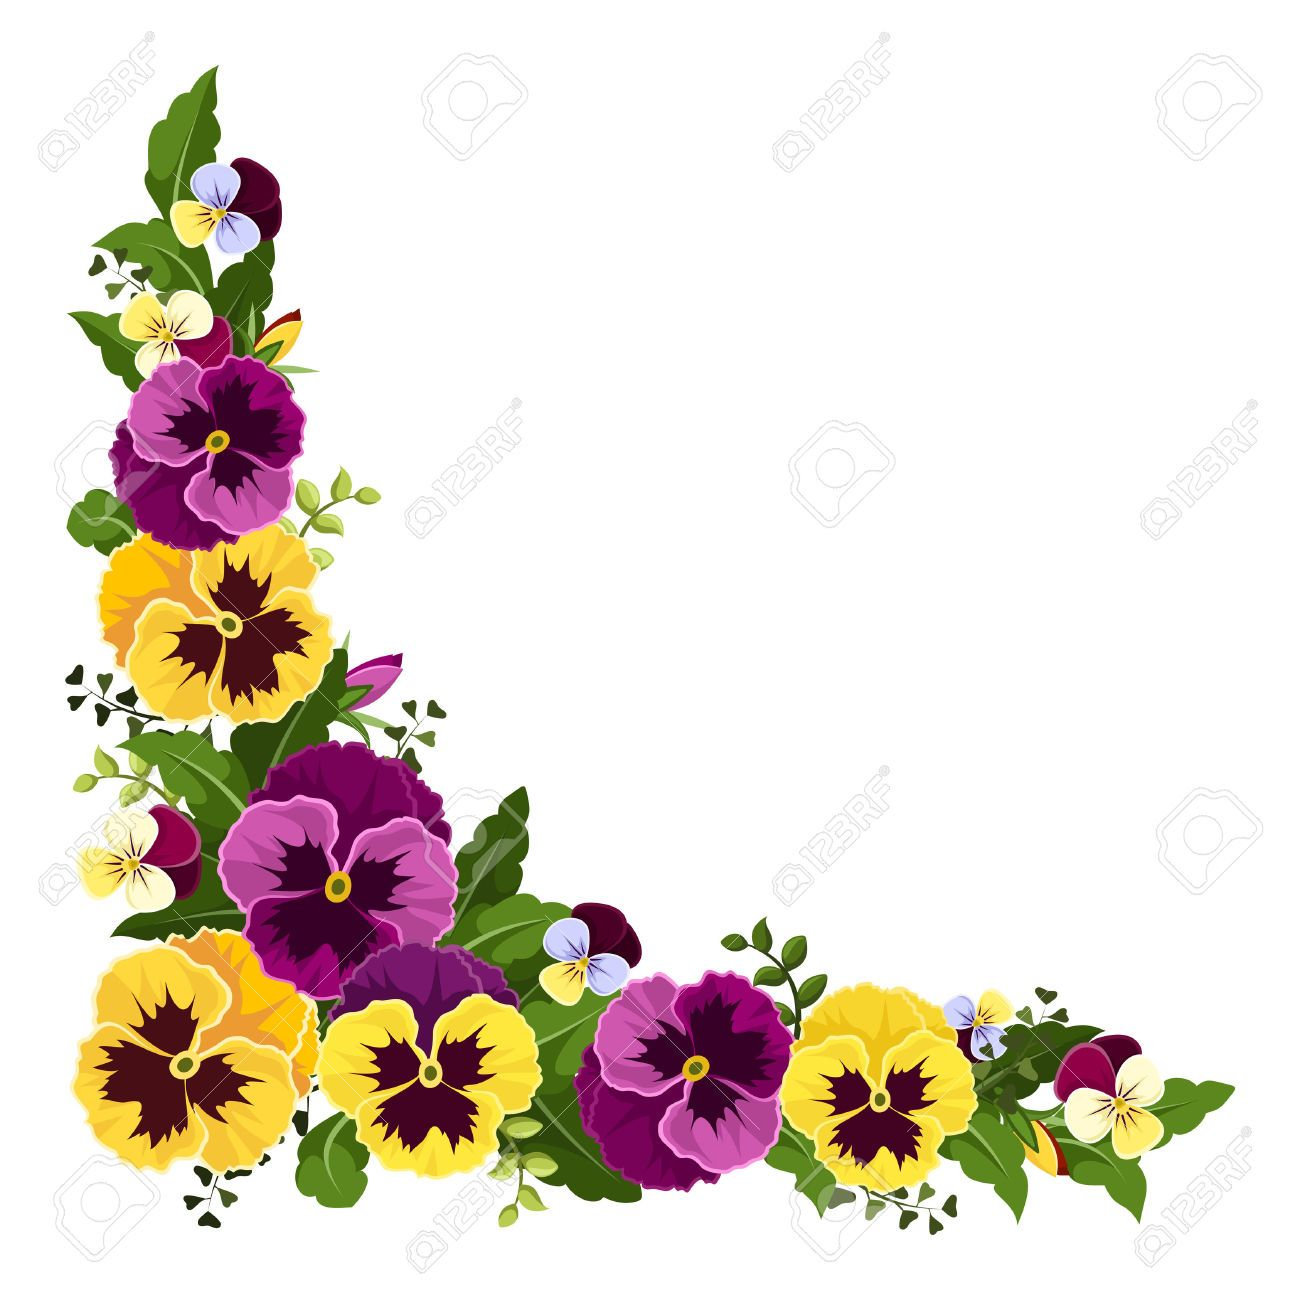 pansy flower clipart google search flower vine borders rh pinterest ie pansy clipart free yellow pansy clipart